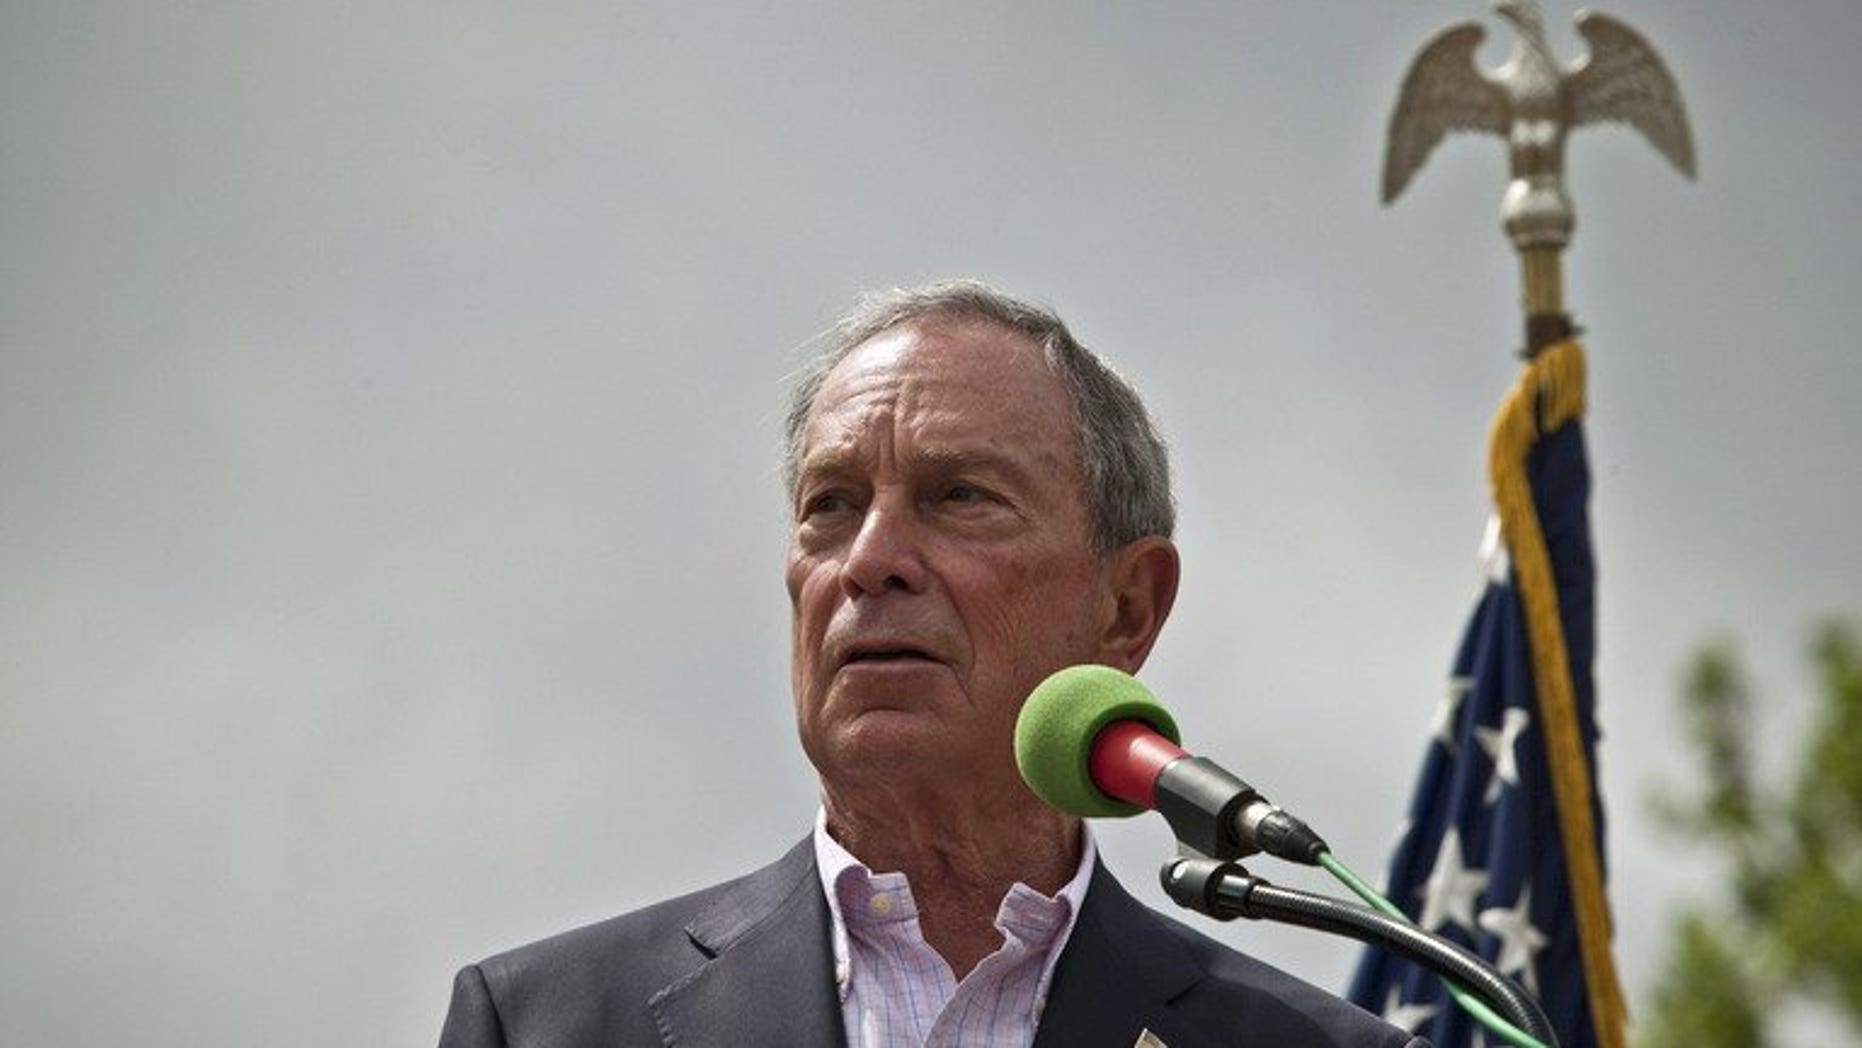 New York Mayor Michael Bloomberg speaks on July 4, 2013 in New York City. Bloomberg has splashed out on a hand-made copper bath from a historic French foundry.